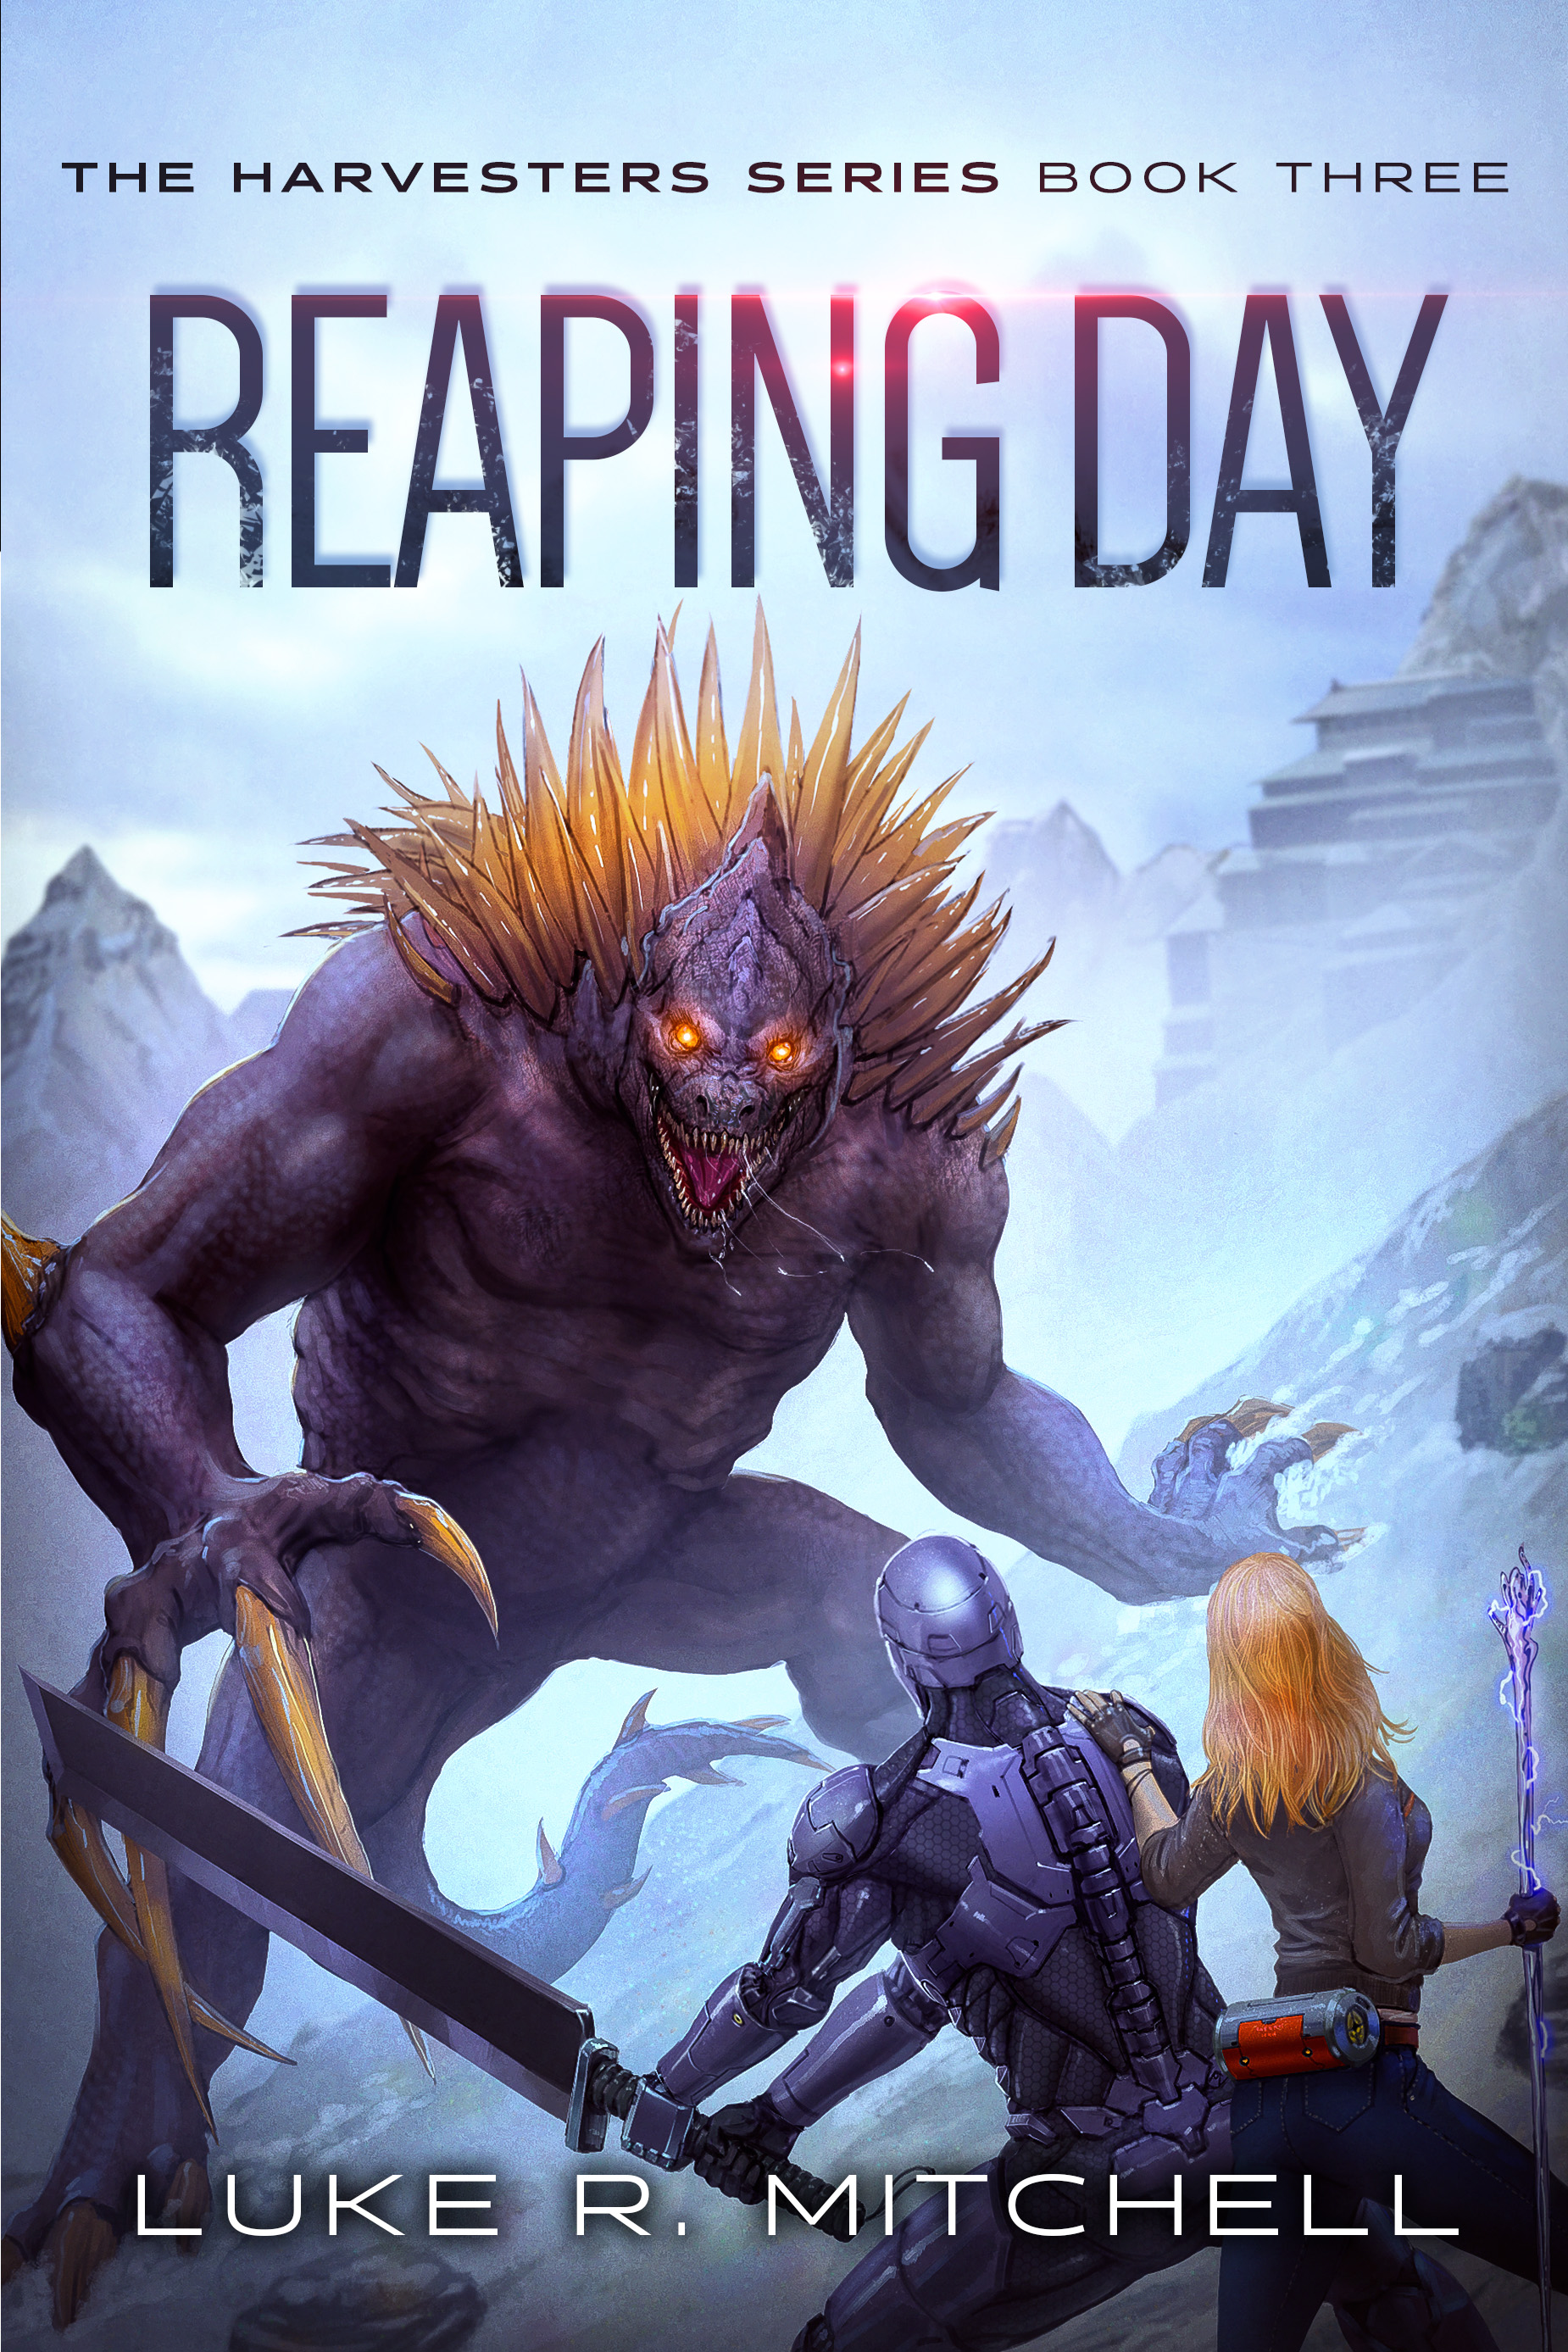 reaping-day-luke-r-mitchell-harvesters-series